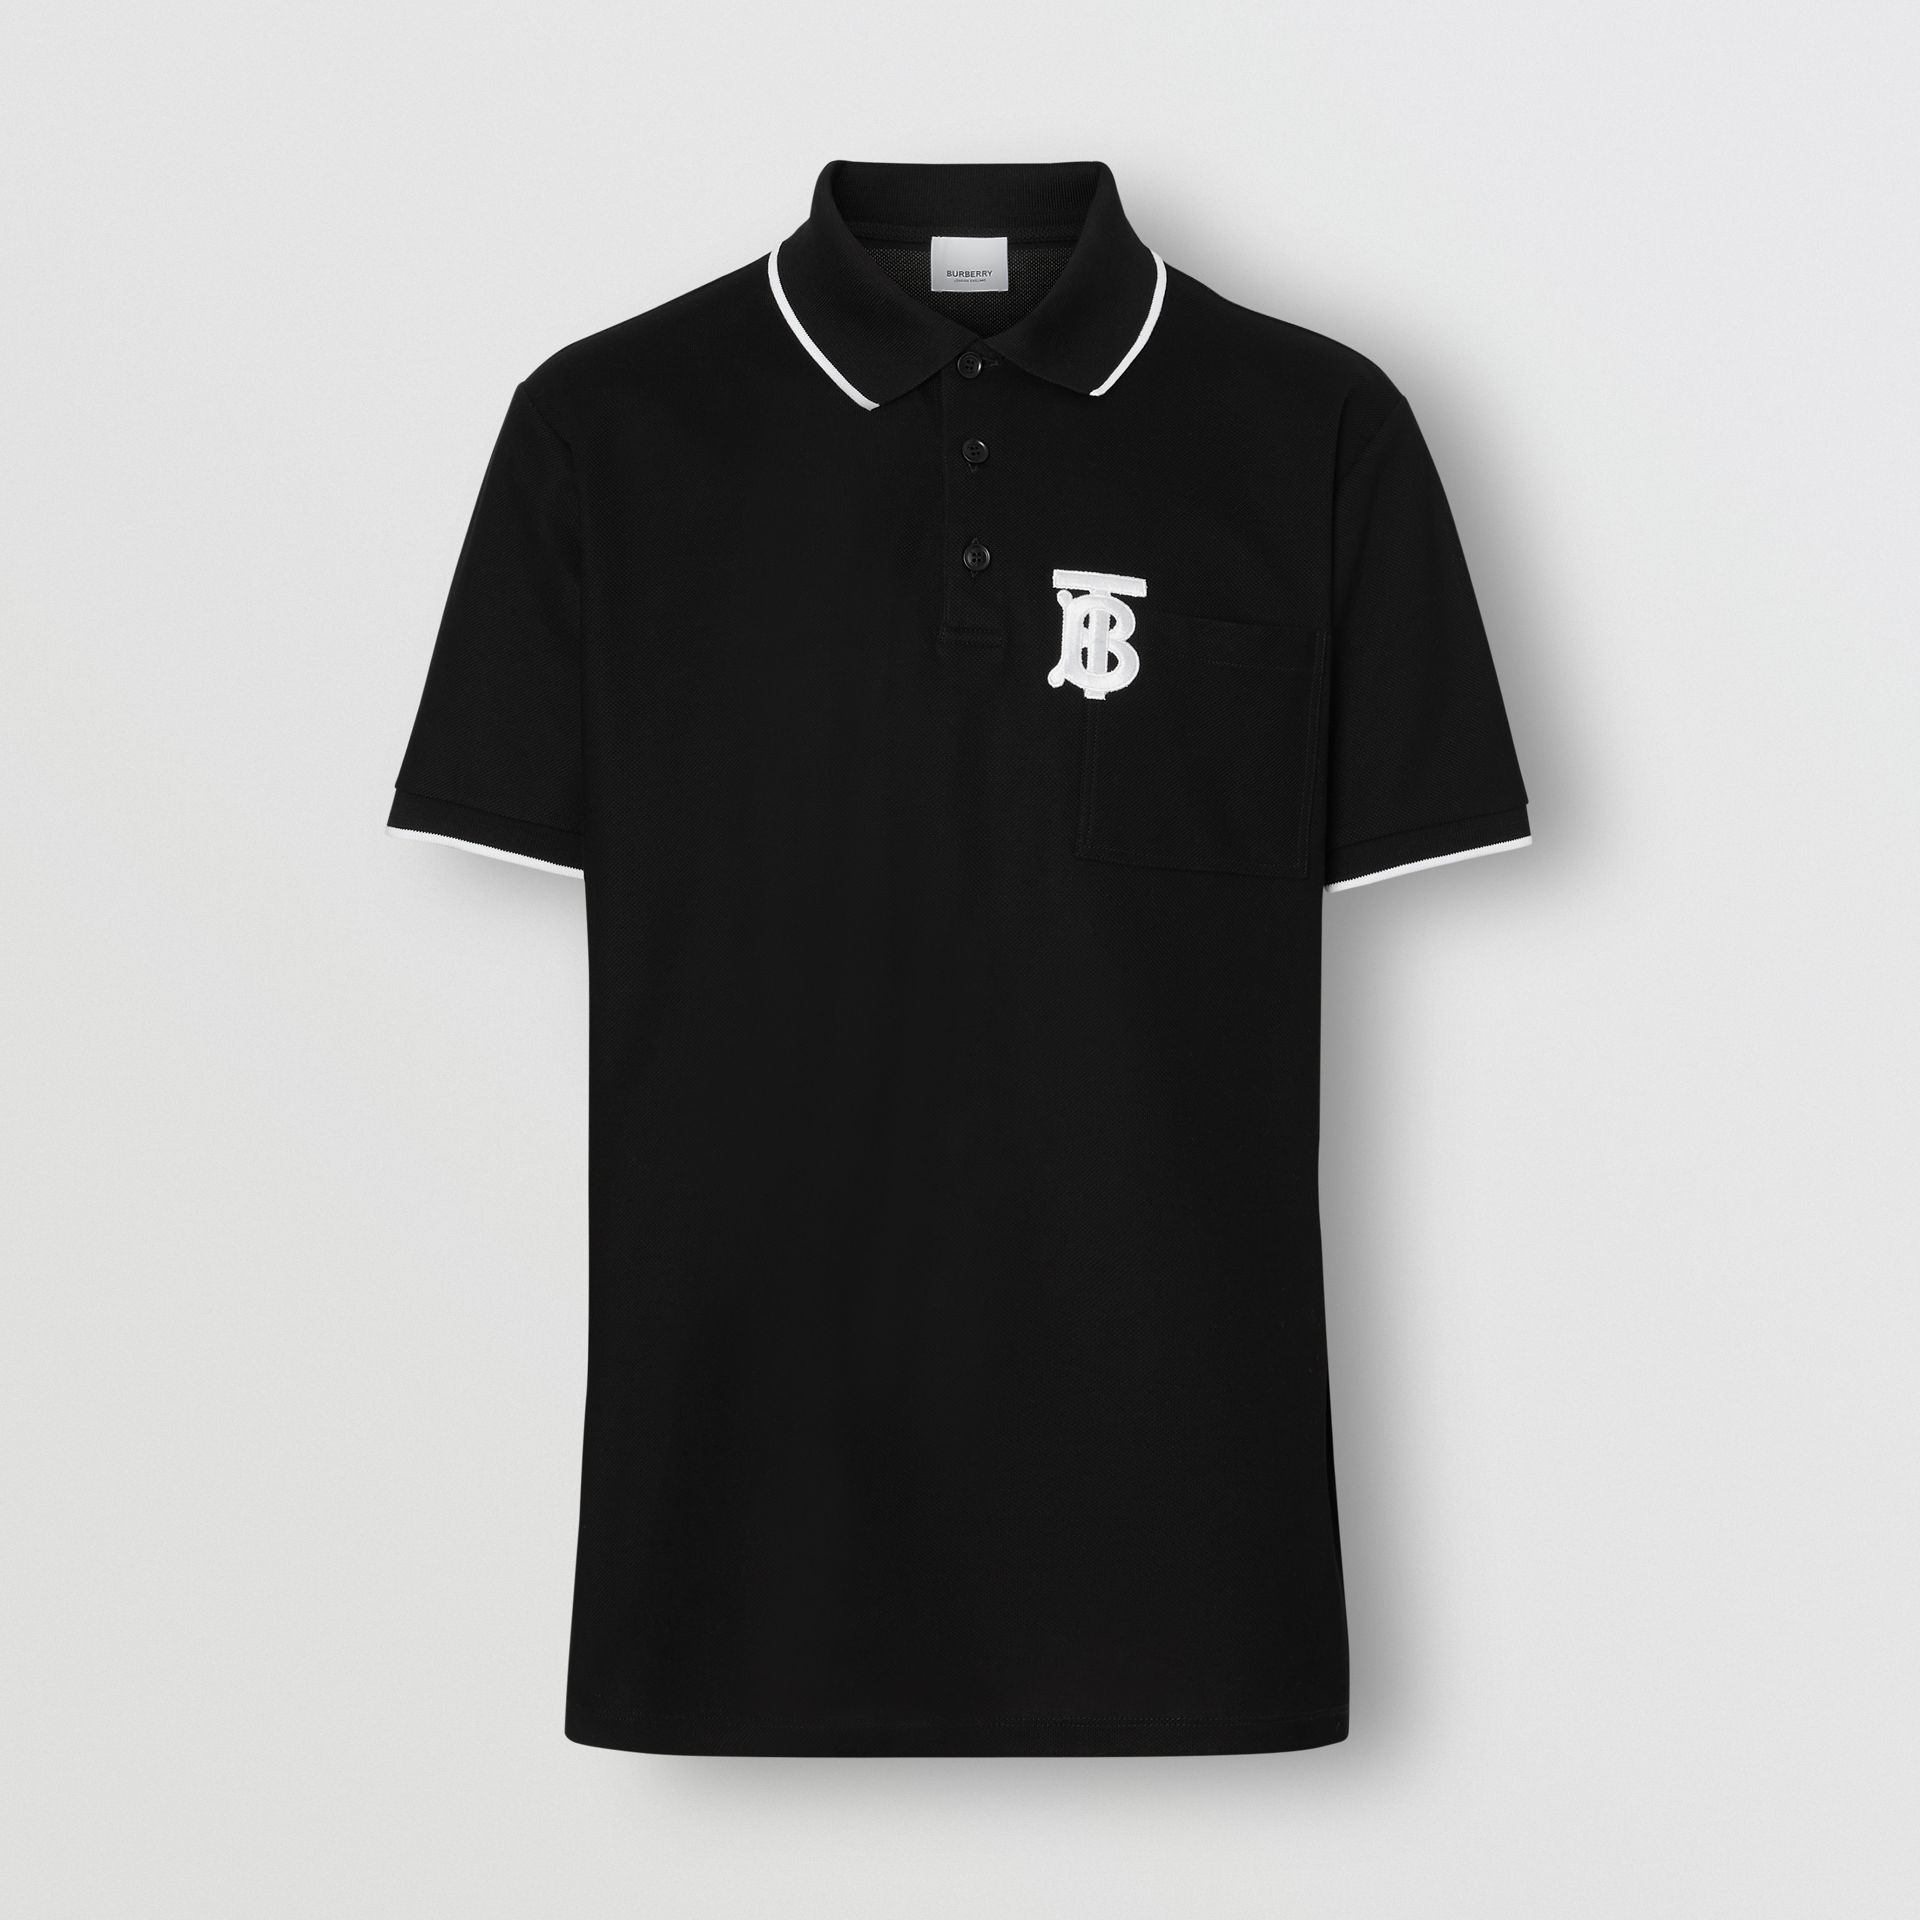 Monogram Motif Tipped Cotton Piqué Polo Shirt in Black - Men | Burberry - gallery image 3